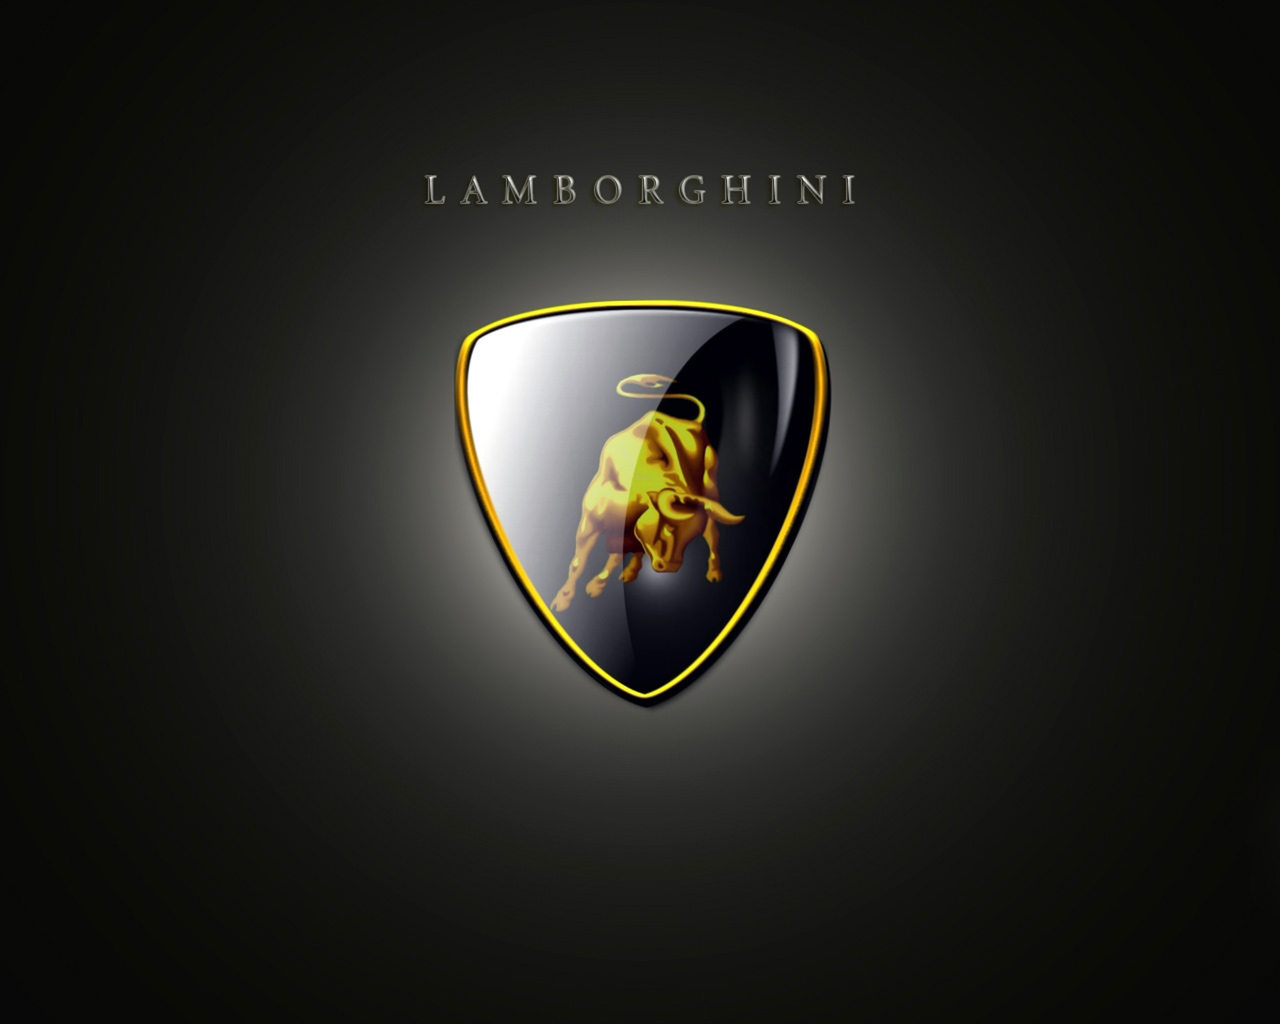 logo wallpaper 2 normal lamborghini logo lamborghini logo wallpaper 1280x1024